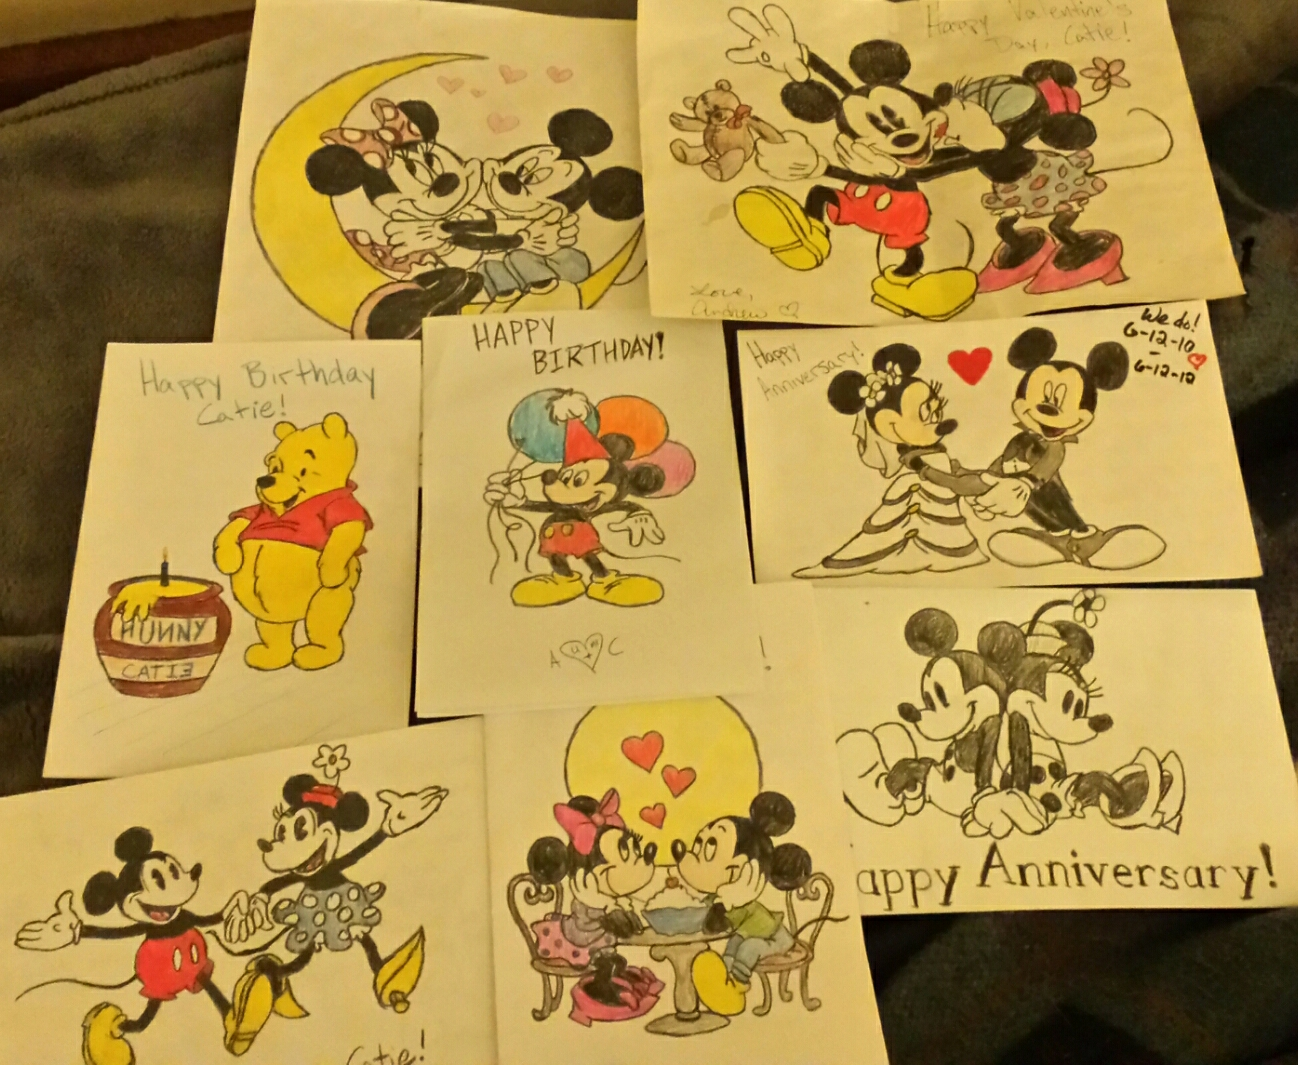 Dont Forget A Disney Greeting Card To Go With That Gift Widely Available At Many Retail Chains And Hallmark Has Ton Of Great Ones Too